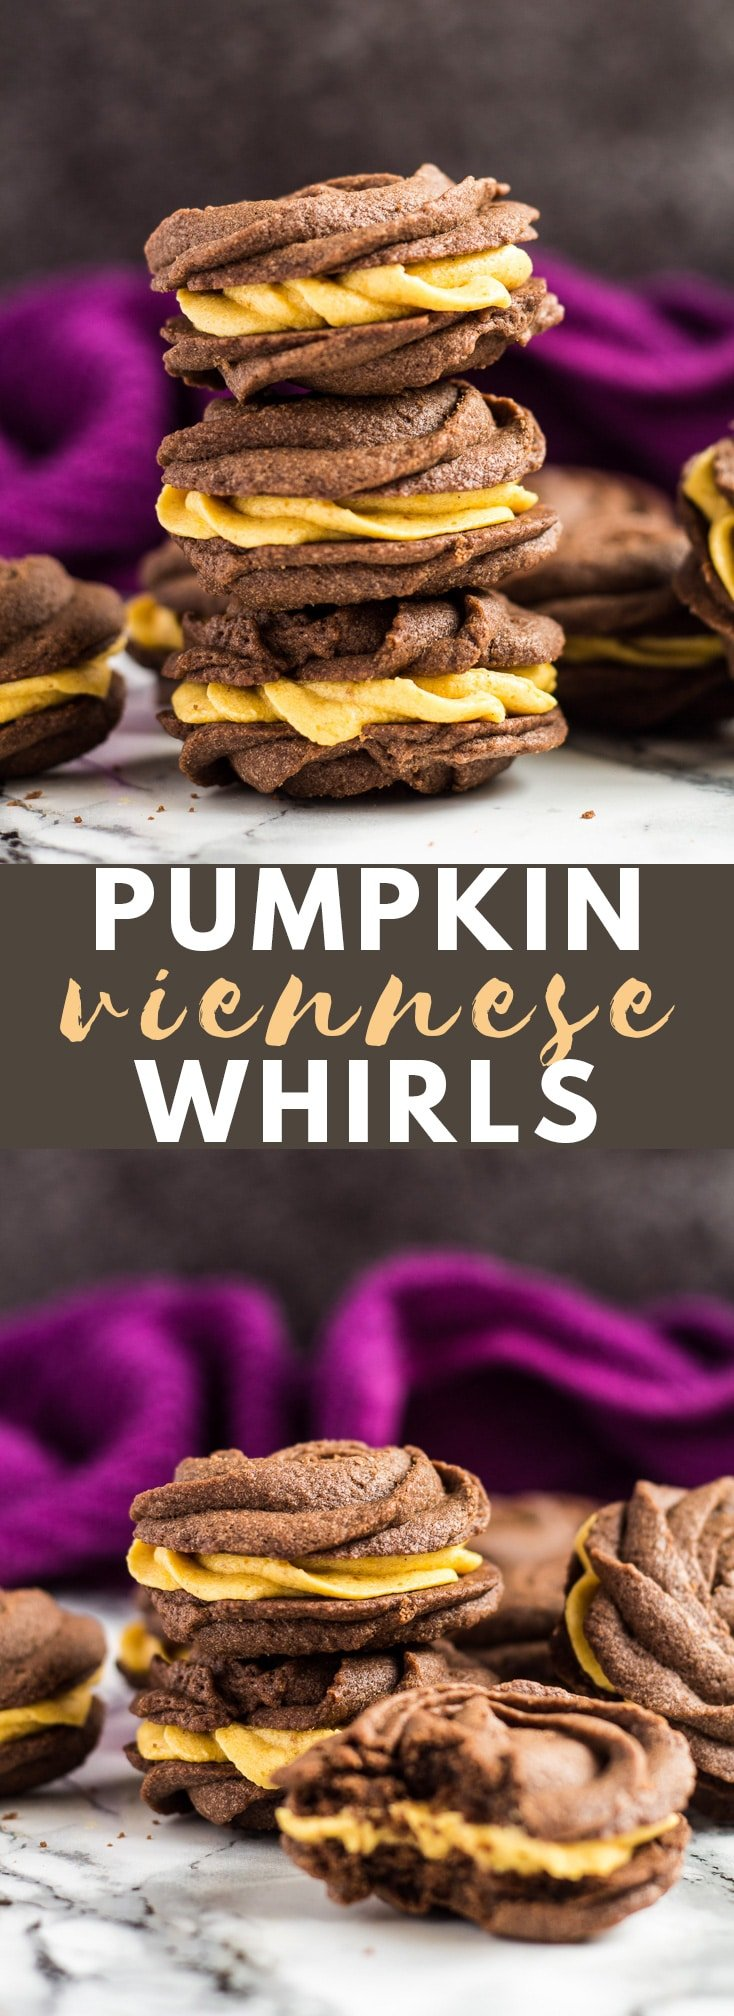 Chocolate Pumpkin Viennese Whirls- Deliciously buttery, melt-in-your-mouth chocolate biscuits filled with a perfectly spiced pumpkin buttercream! #chocolate #pumpkin #cookies #viennesewhirls